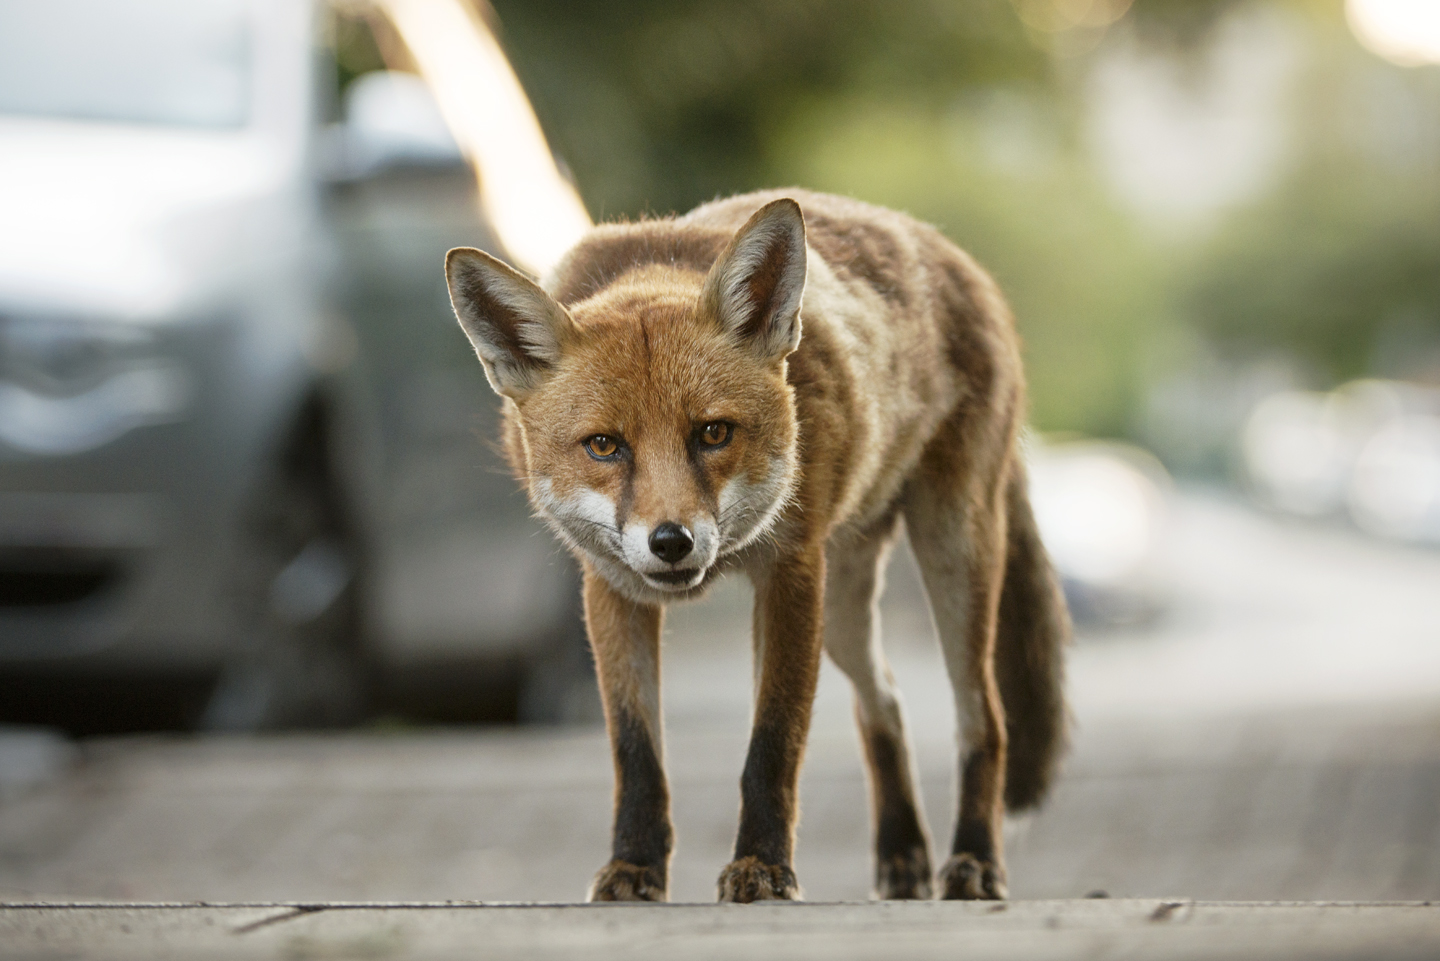 They divide our neighbourhoods into their own territories. We are lucky to own a house, but a fox owns the whole street